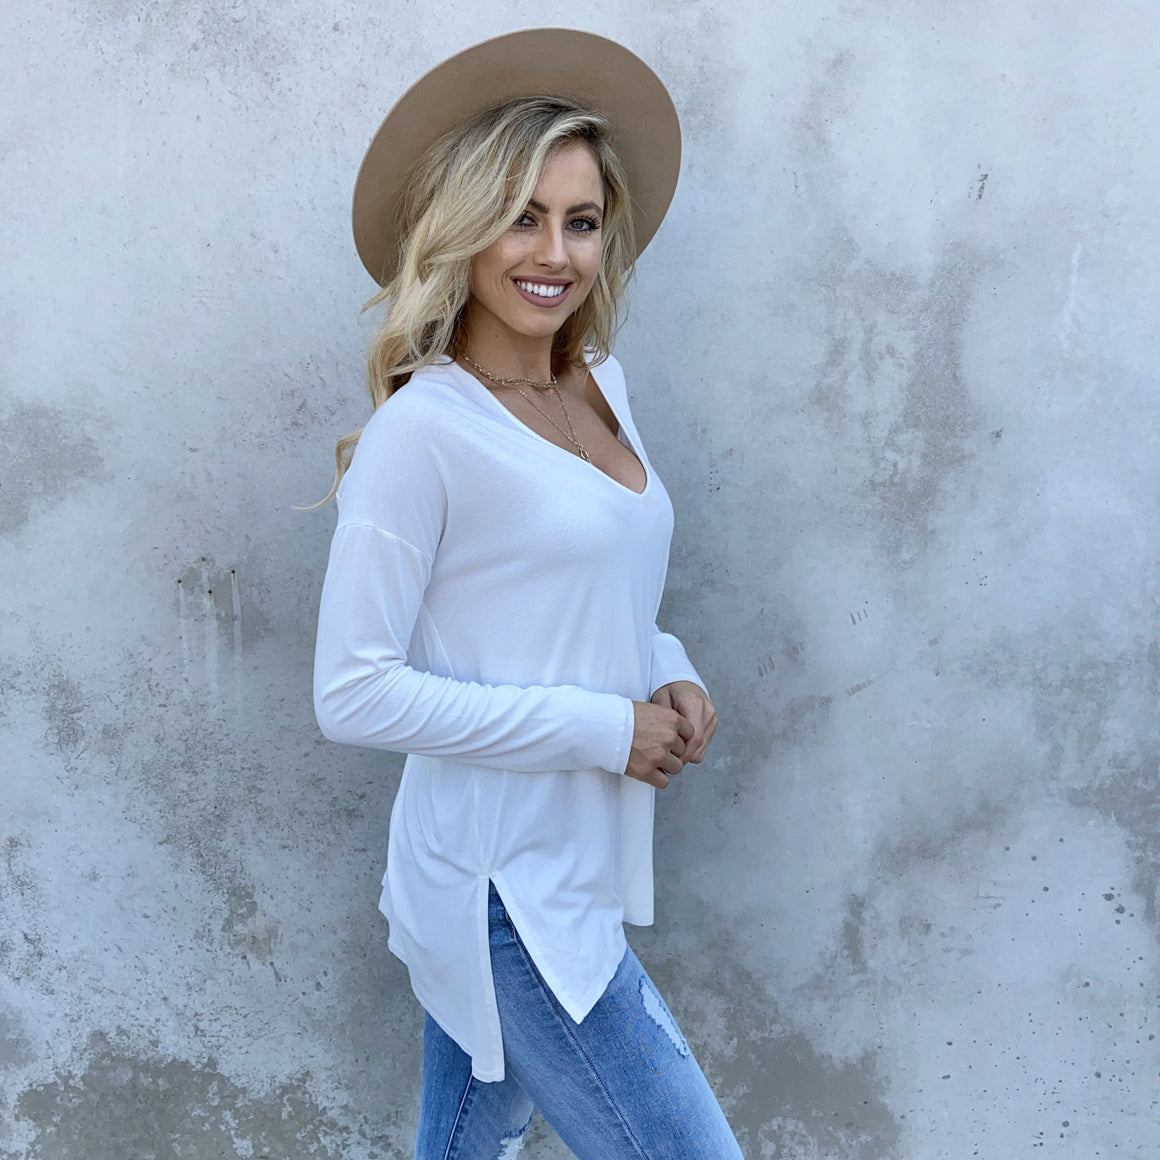 Dusk to Dawn Tunic Top In White - Dainty Hooligan